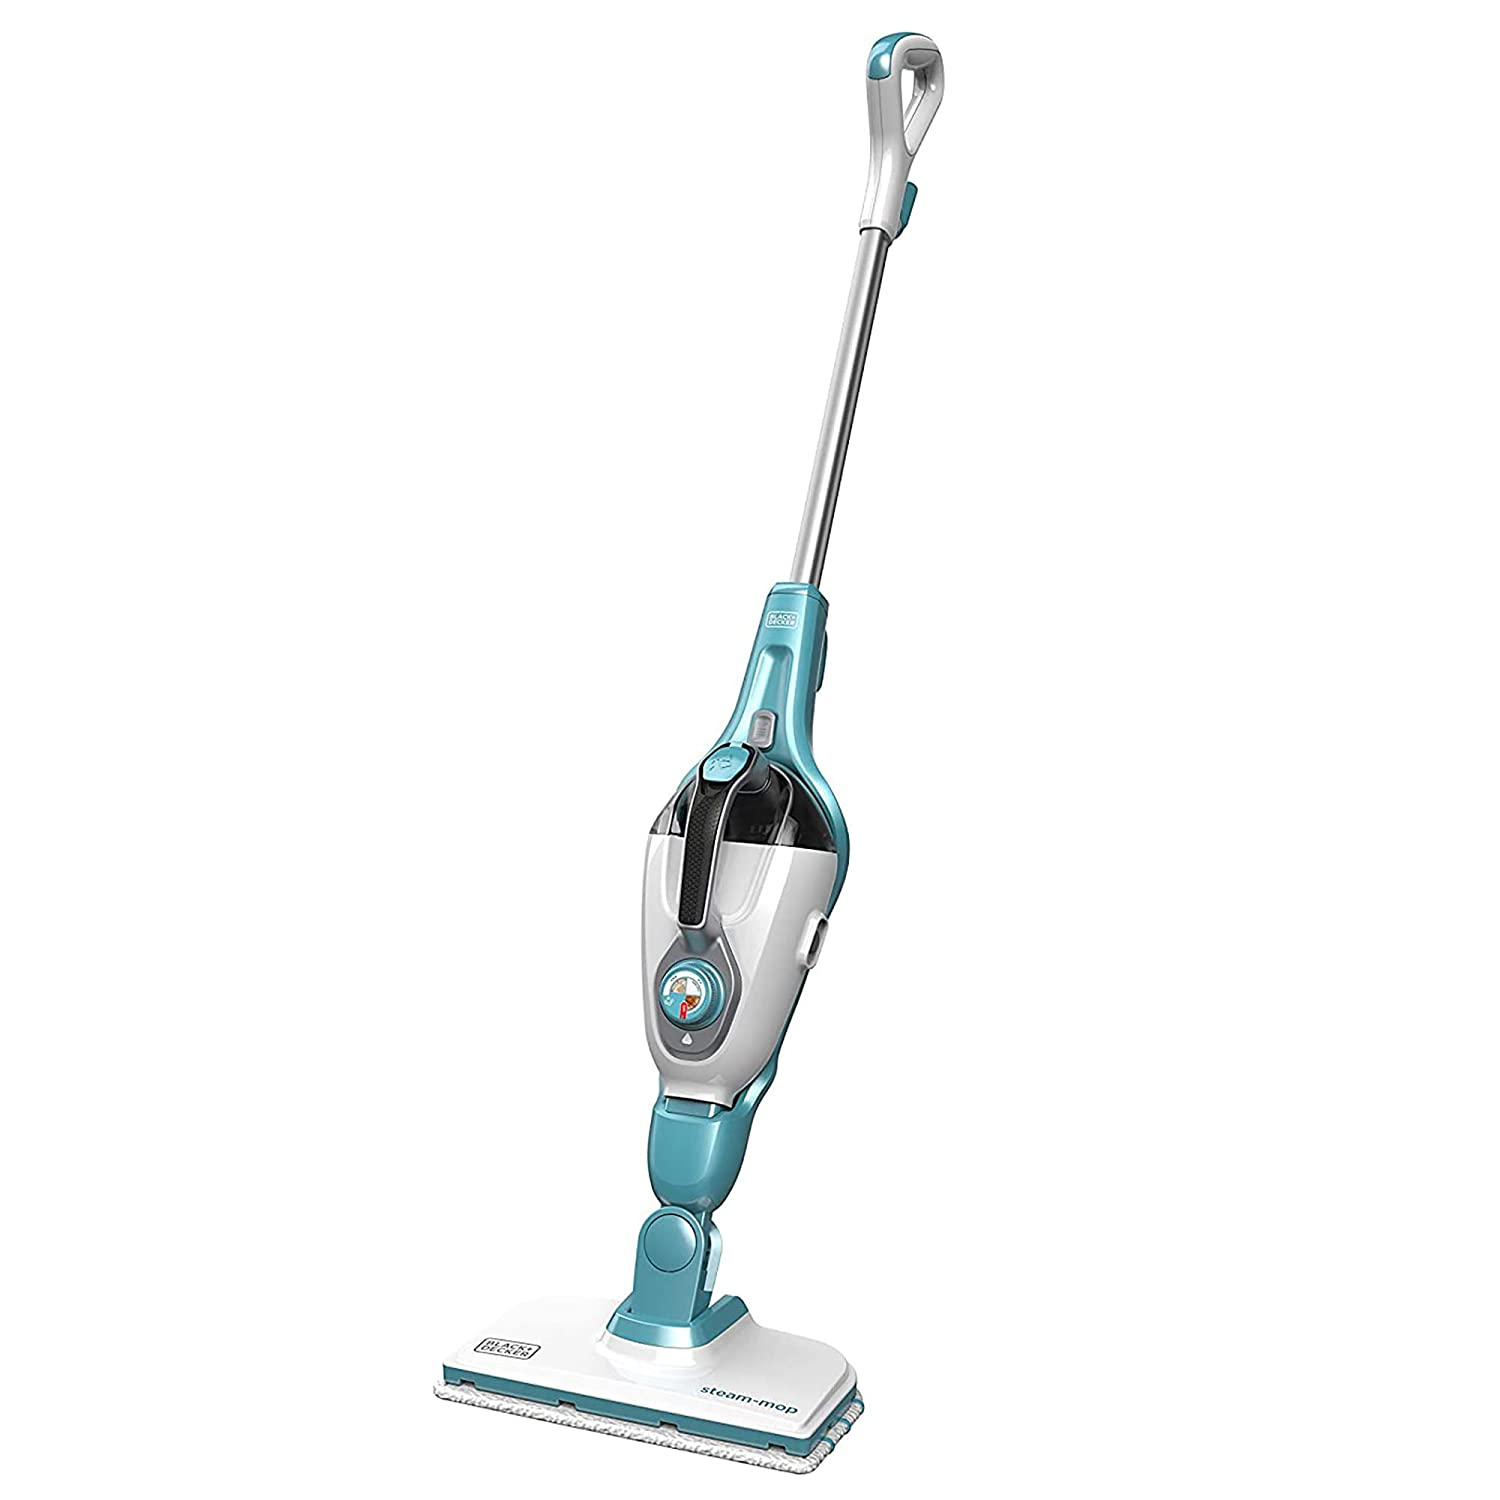 BLACK+DECKER FSMH1321 7-in-1 steam-mop